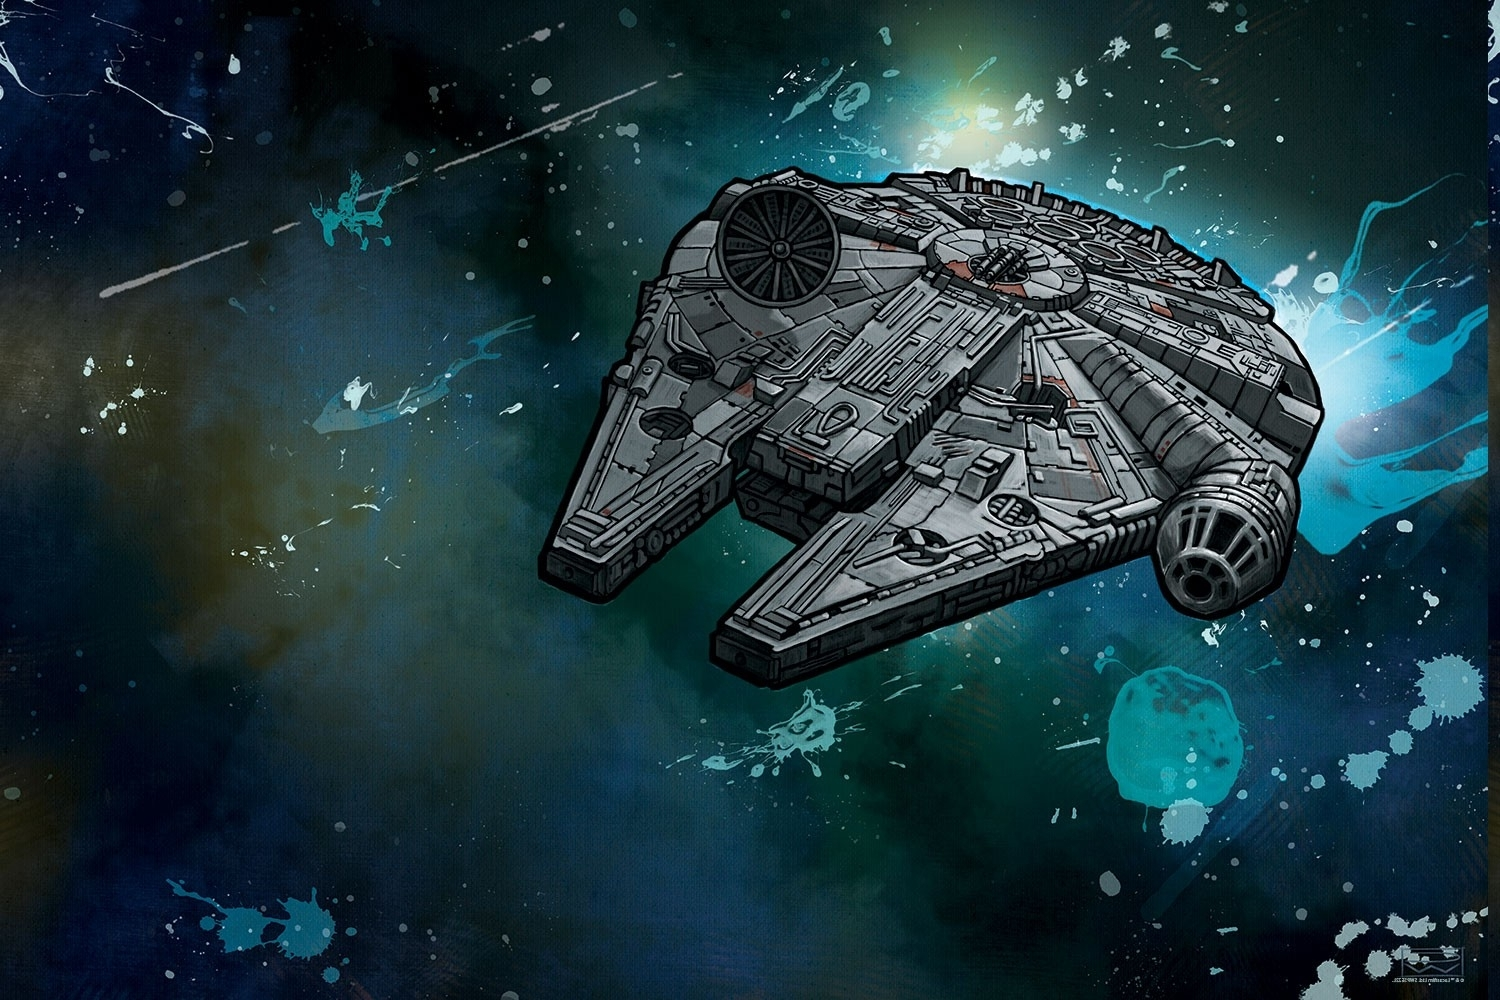 star wars, join the alliance, millennium falcon wallpapers hd